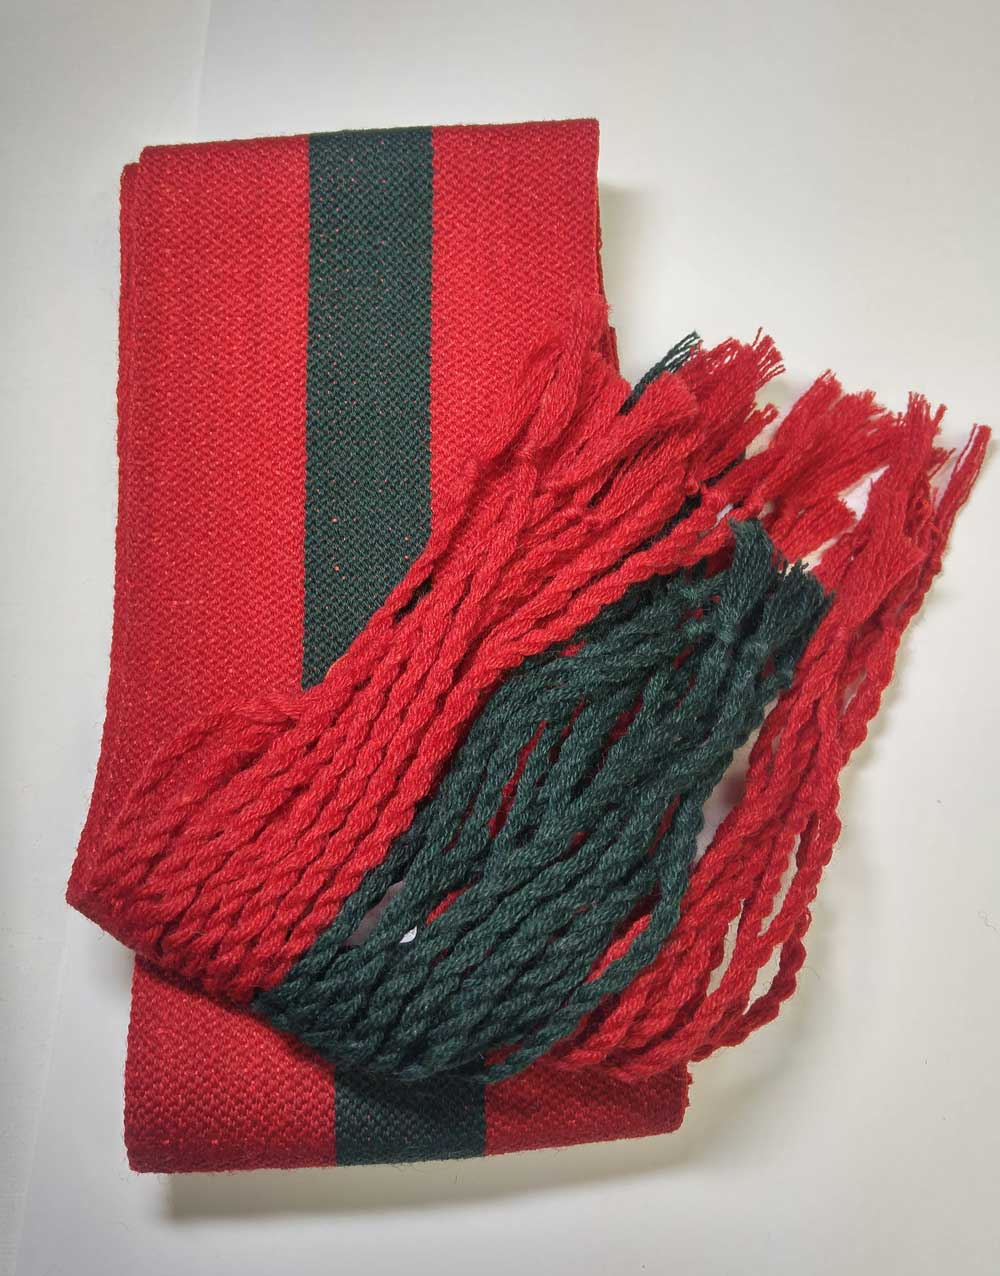 Sash: Sgt., Red with Green Stripe, 18/19C